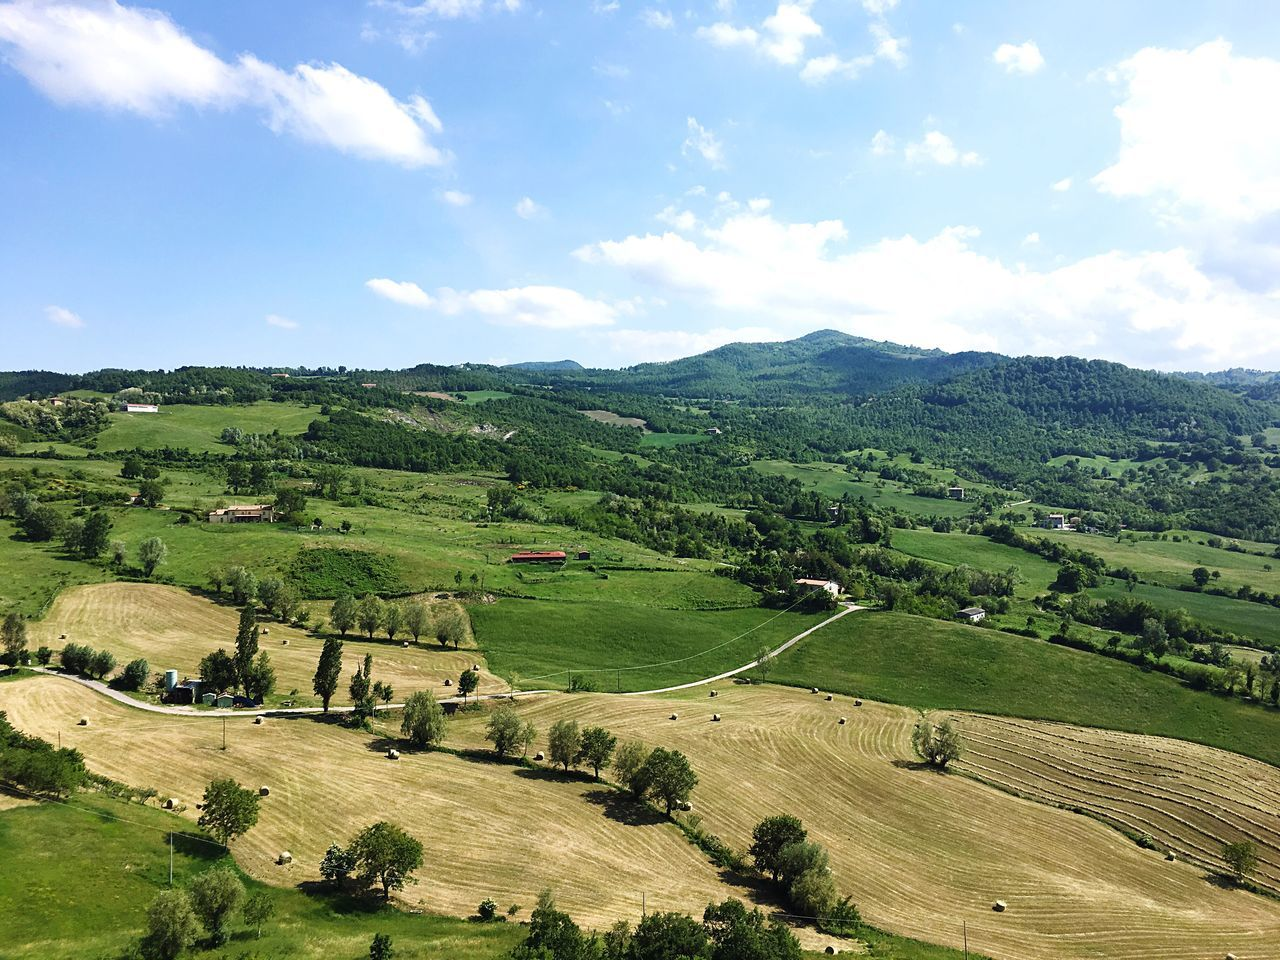 Landscape Beauty In Nature Tranquil Scene Agriculture Nature Scenics Tranquility Field Sky Day Rural Scene No People Cloud - Sky Outdoors Tree Mountain Montefeltro San Leo